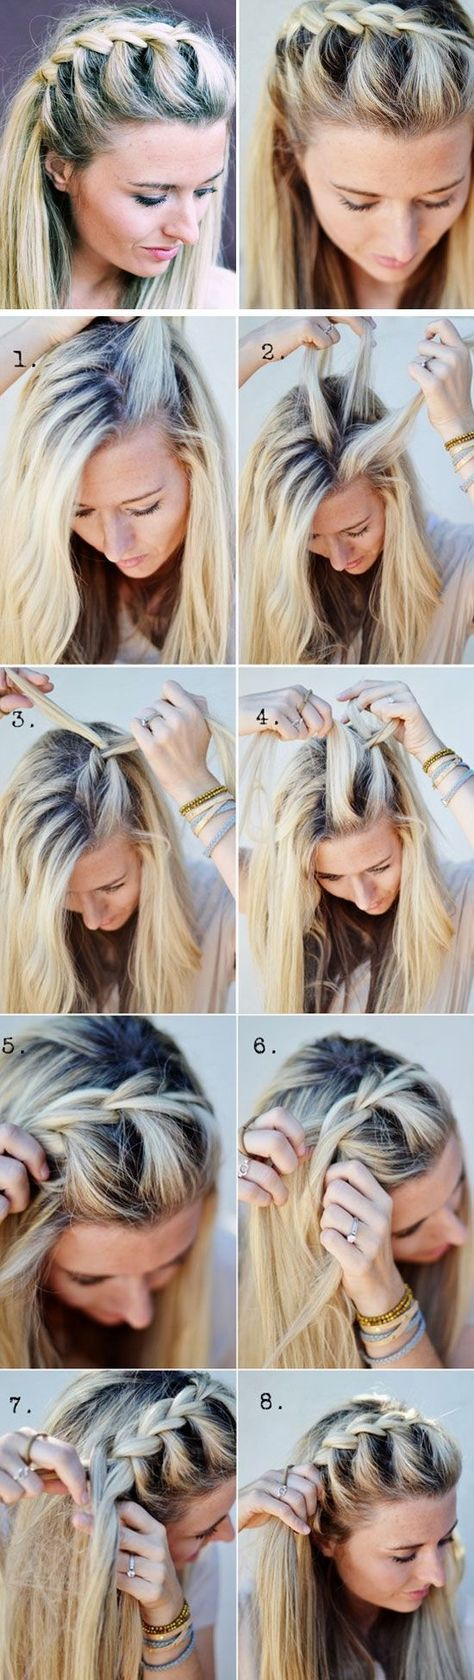 Halfup side french braid fall hairstyles side french braids and